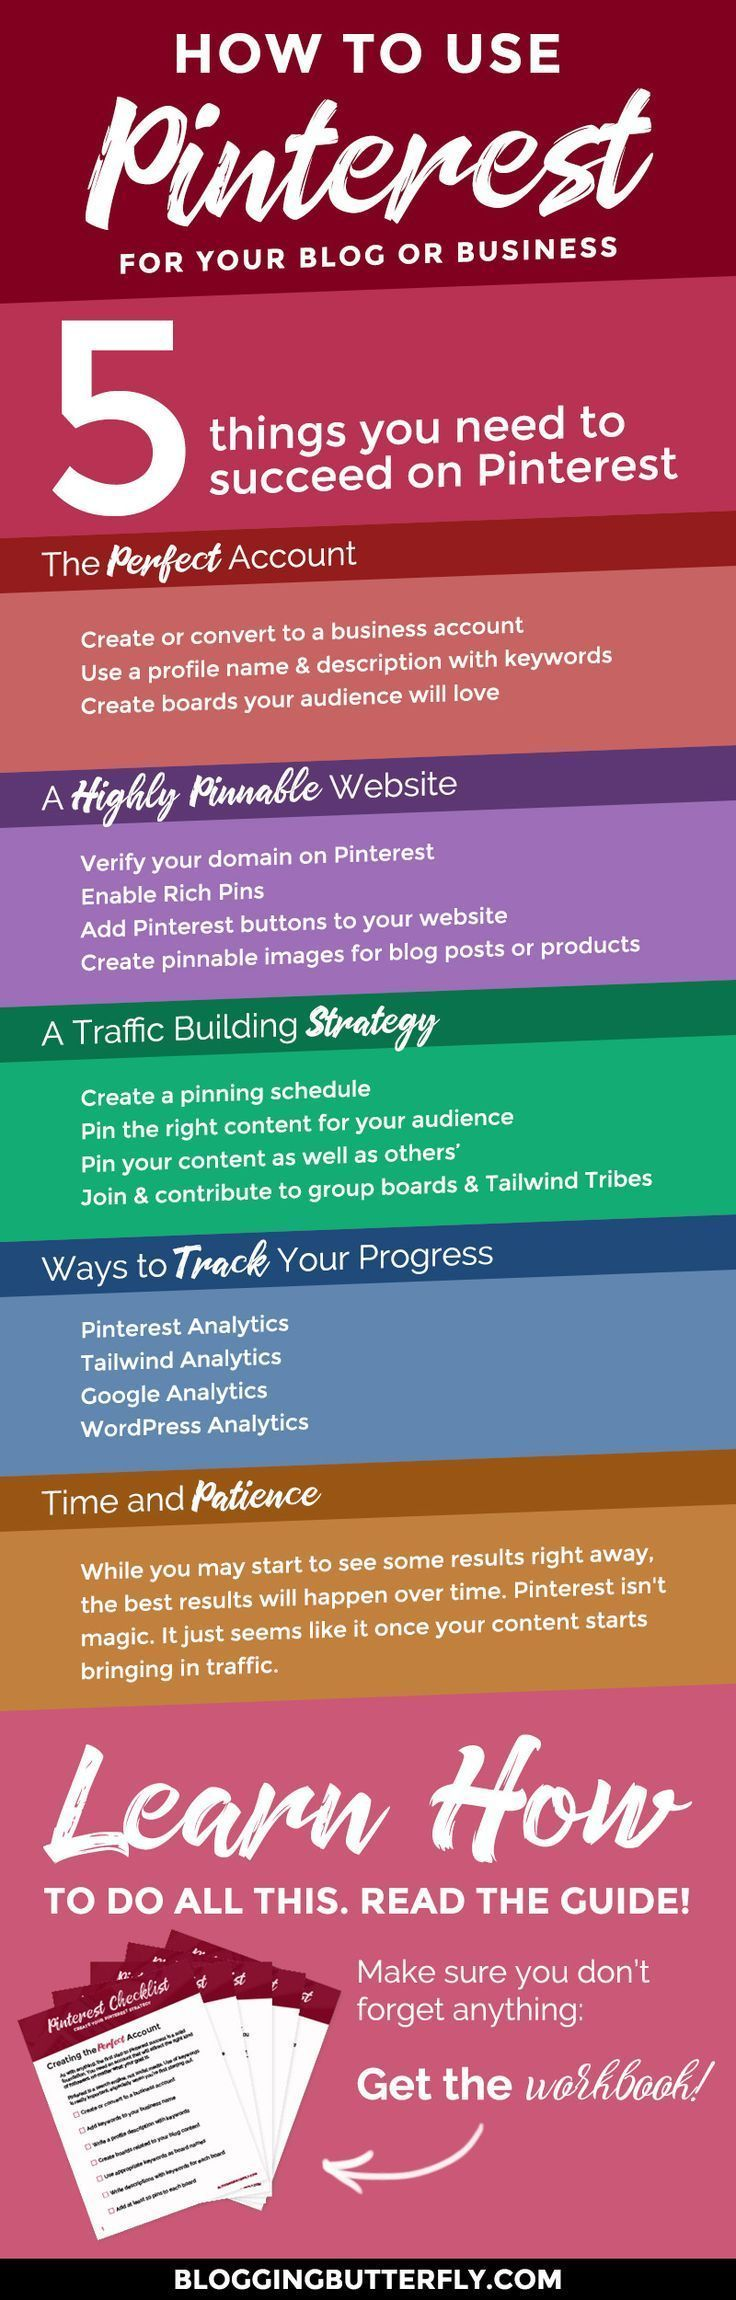 Pinterest for Bloggers: How to Use Pinterest to Drive Traffic to Your BlogSara Connell